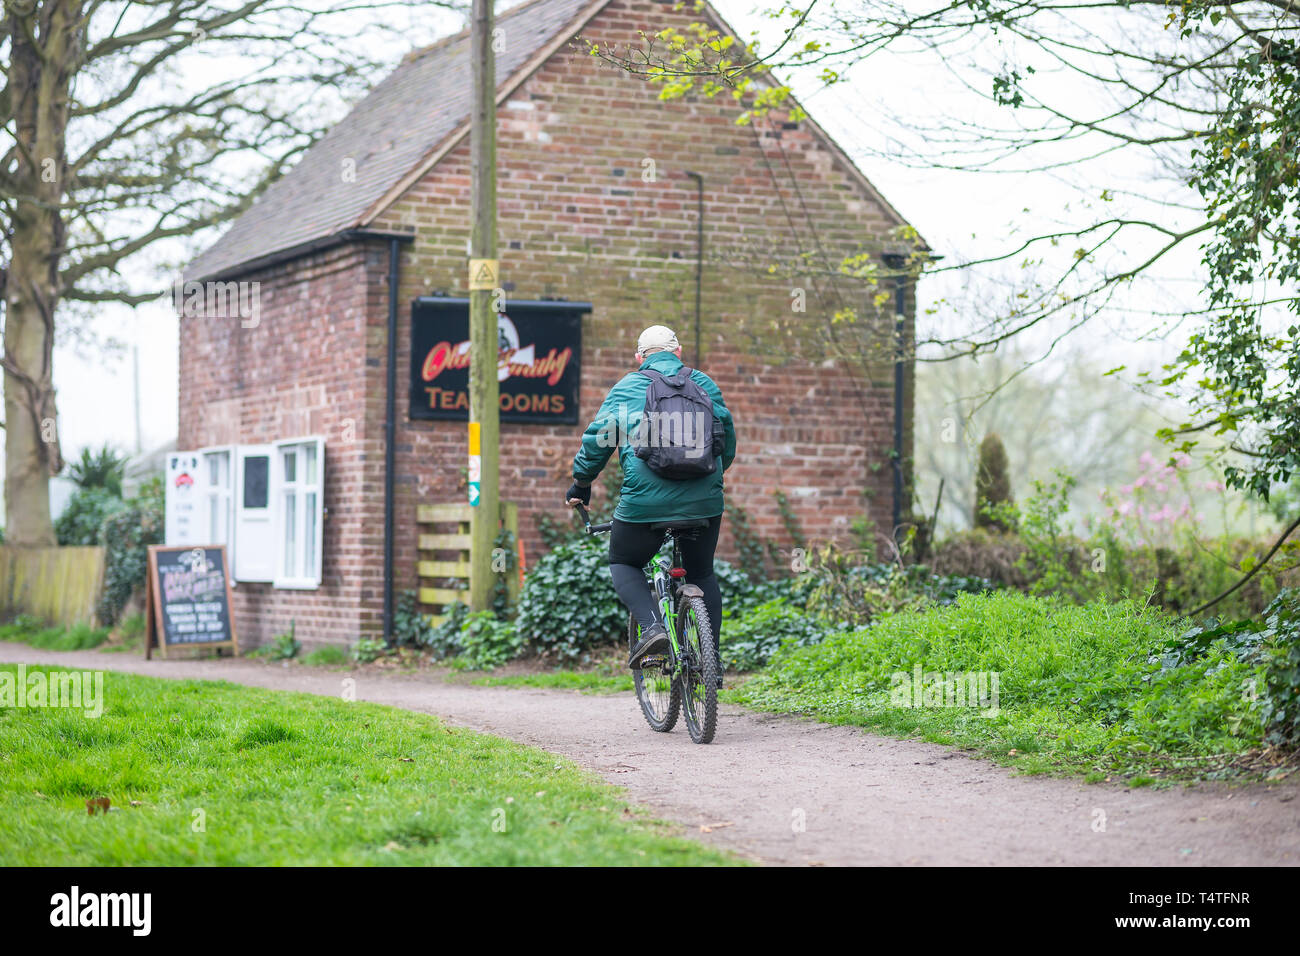 Rear view of senior man on bicycle in green coat with rucksack on his back, cycling alone along UK canal towpath past an open tearoom, spring morning. - Stock Image